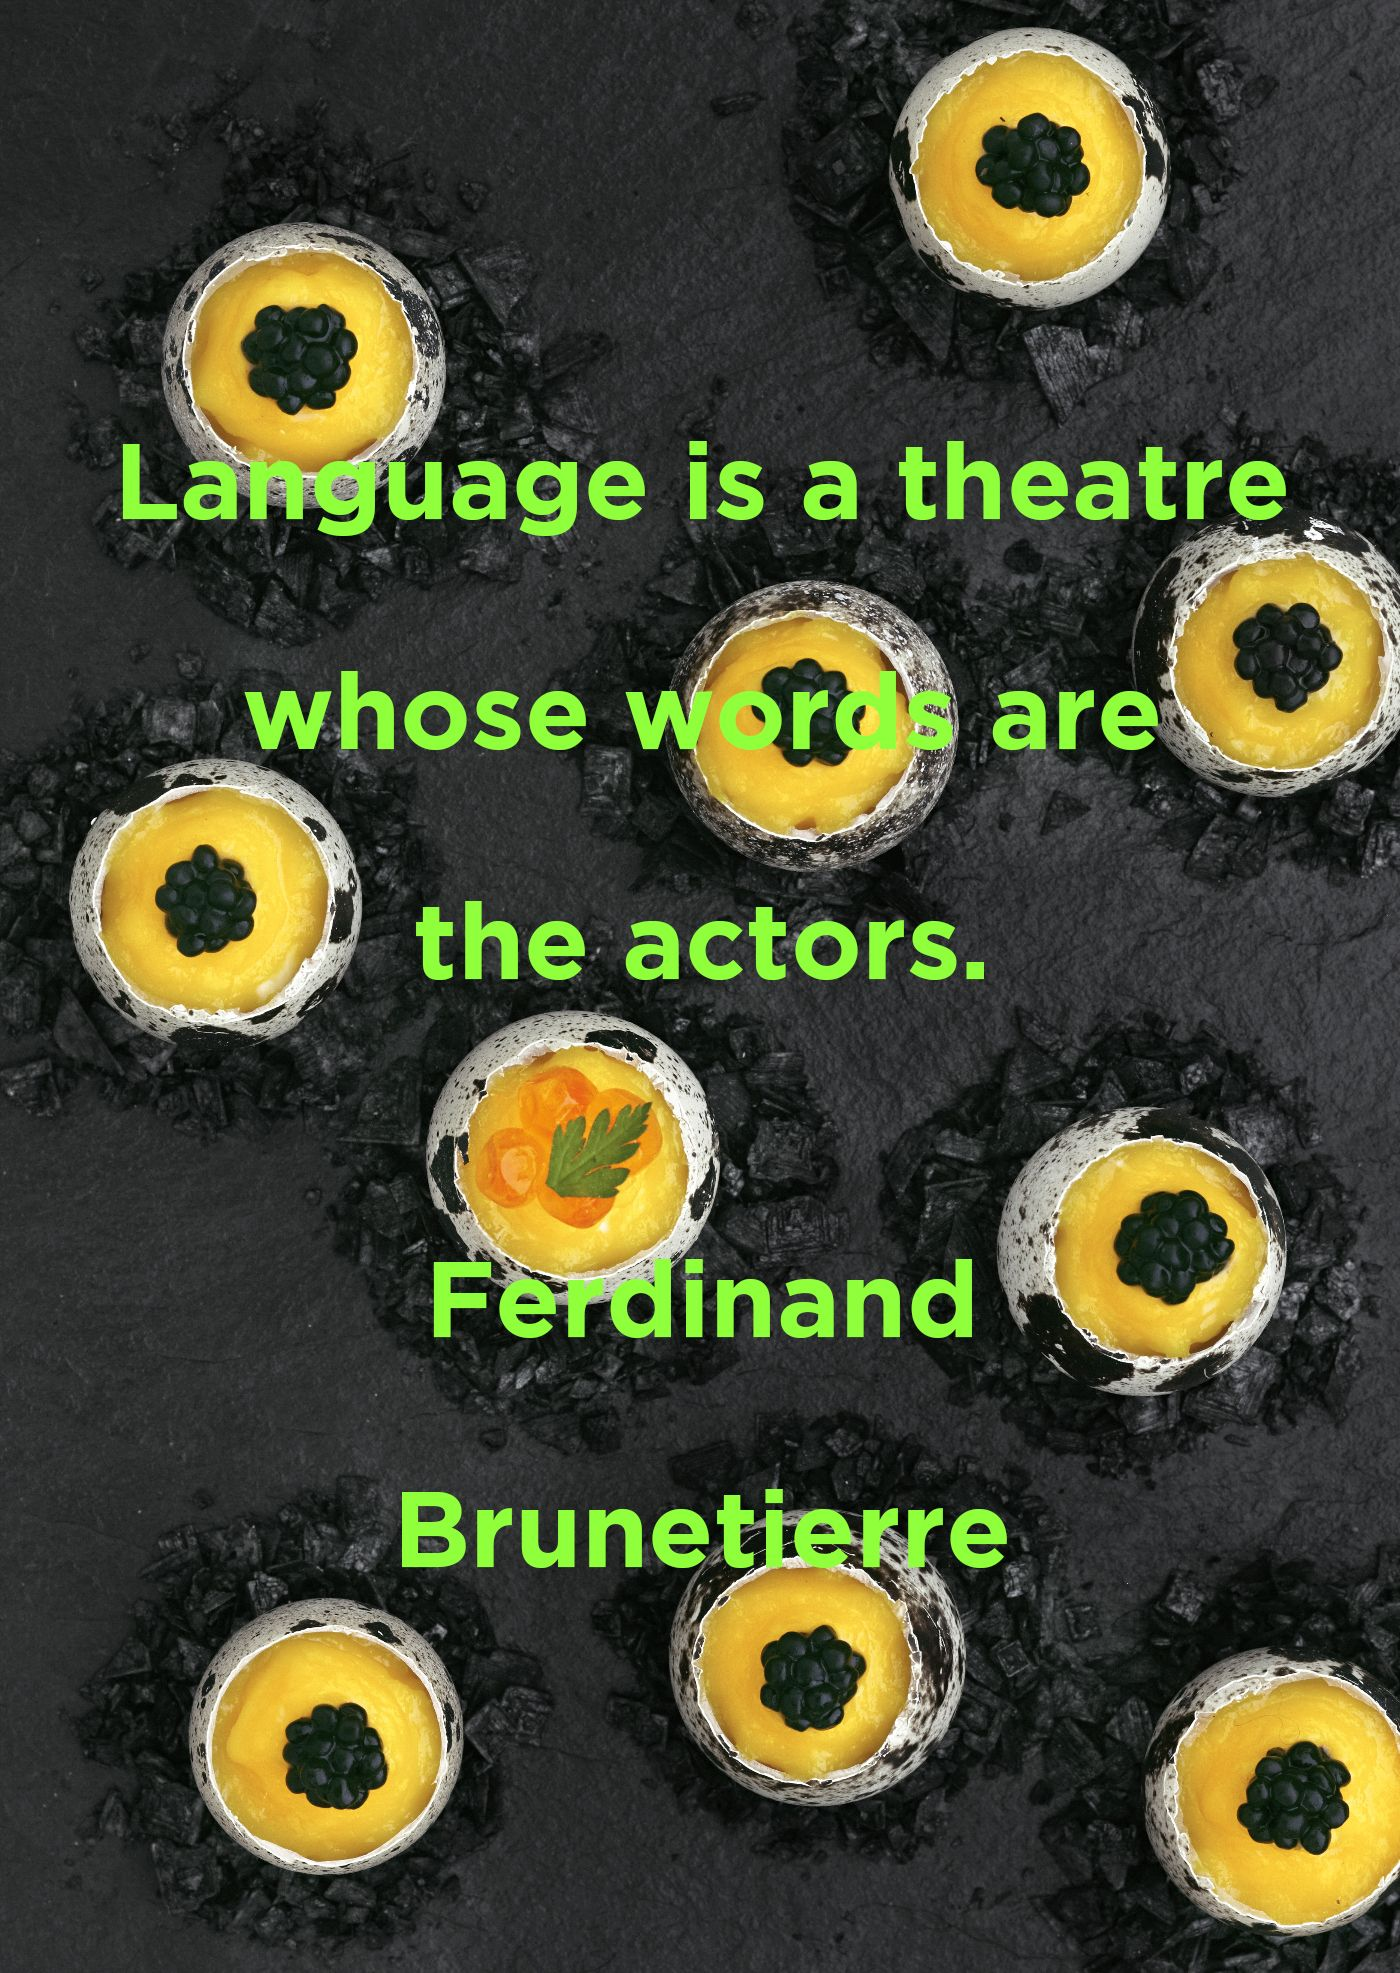 Language is a theatre whose words are the actors. Ferdinand Brunetierre #travel #language #food